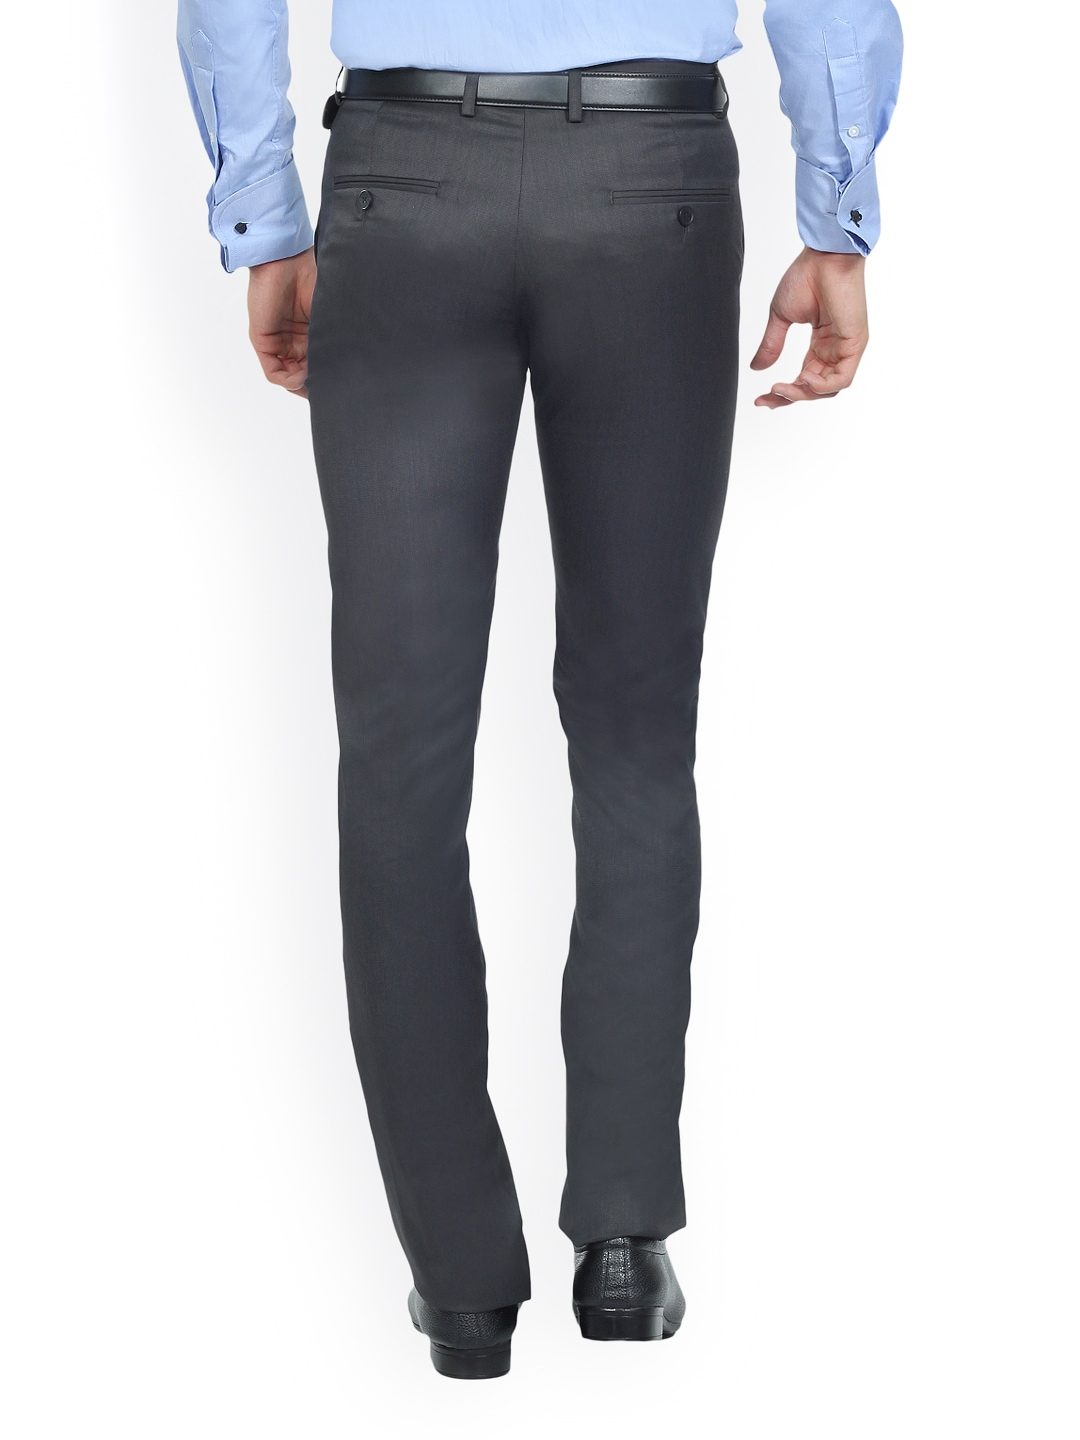 Buy Men's Jeans at Amazing Prices on hitmixeoo.gq From the modern and trendy slim and skinny fit jeans to the classic relaxed fit for maximum comfort, choose from a wide variety of styles, sizes and colours for your men's jeans purchase.